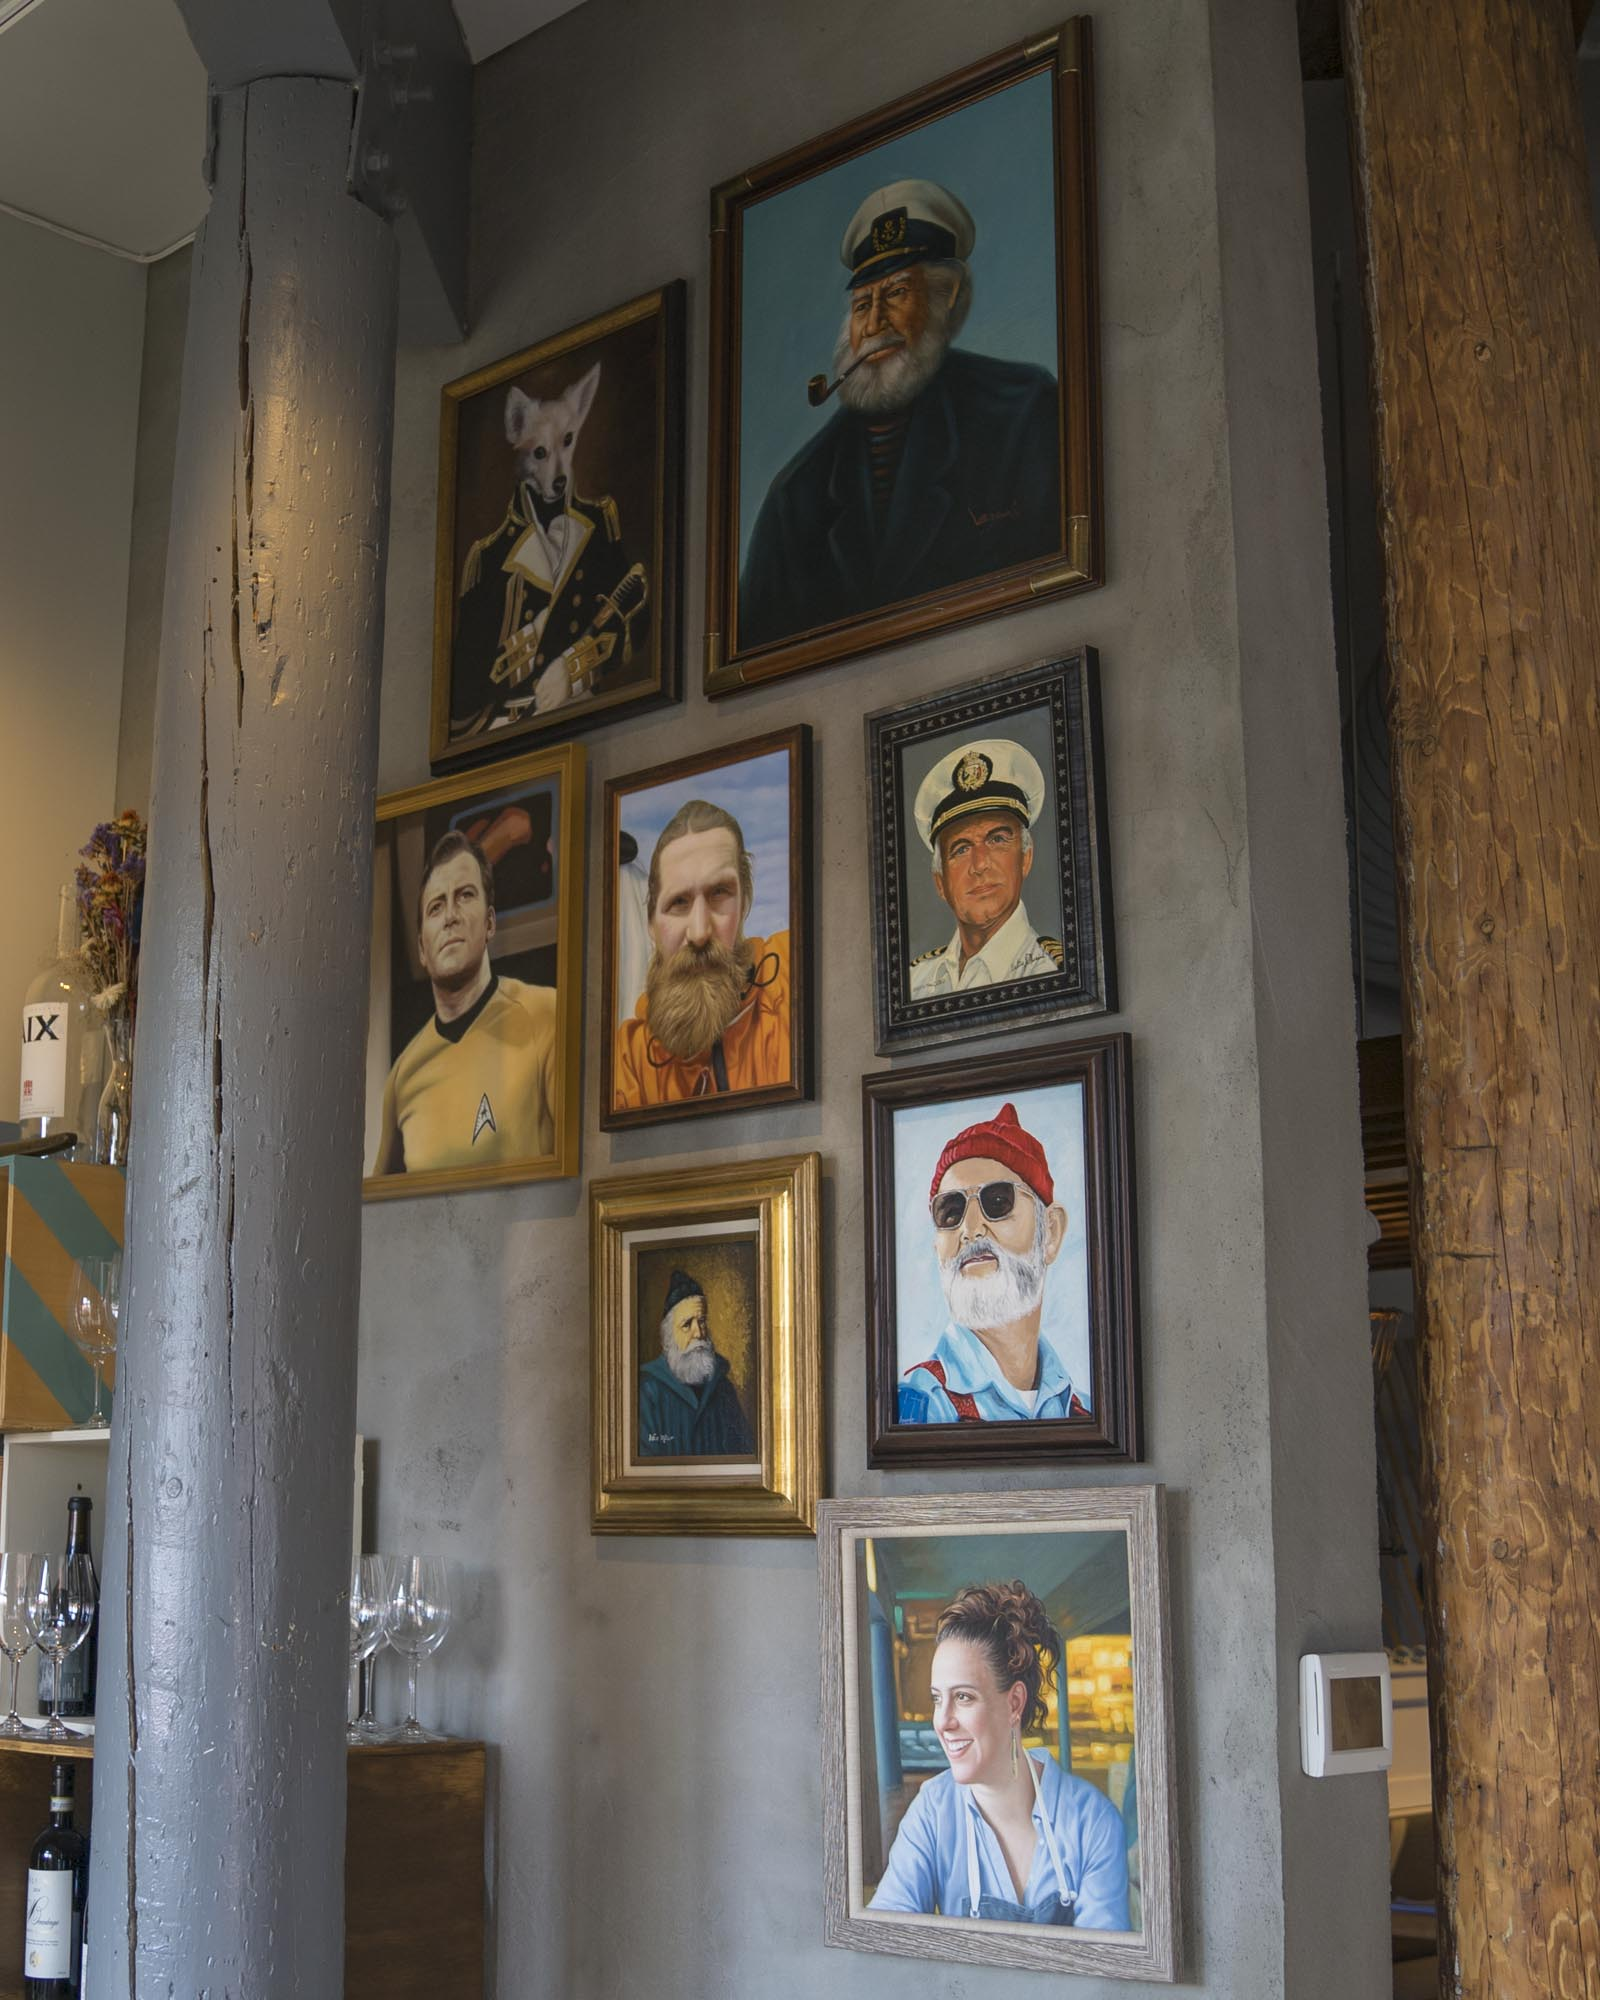 A few paintings of famous sailors and captains at Westward in Seattle.